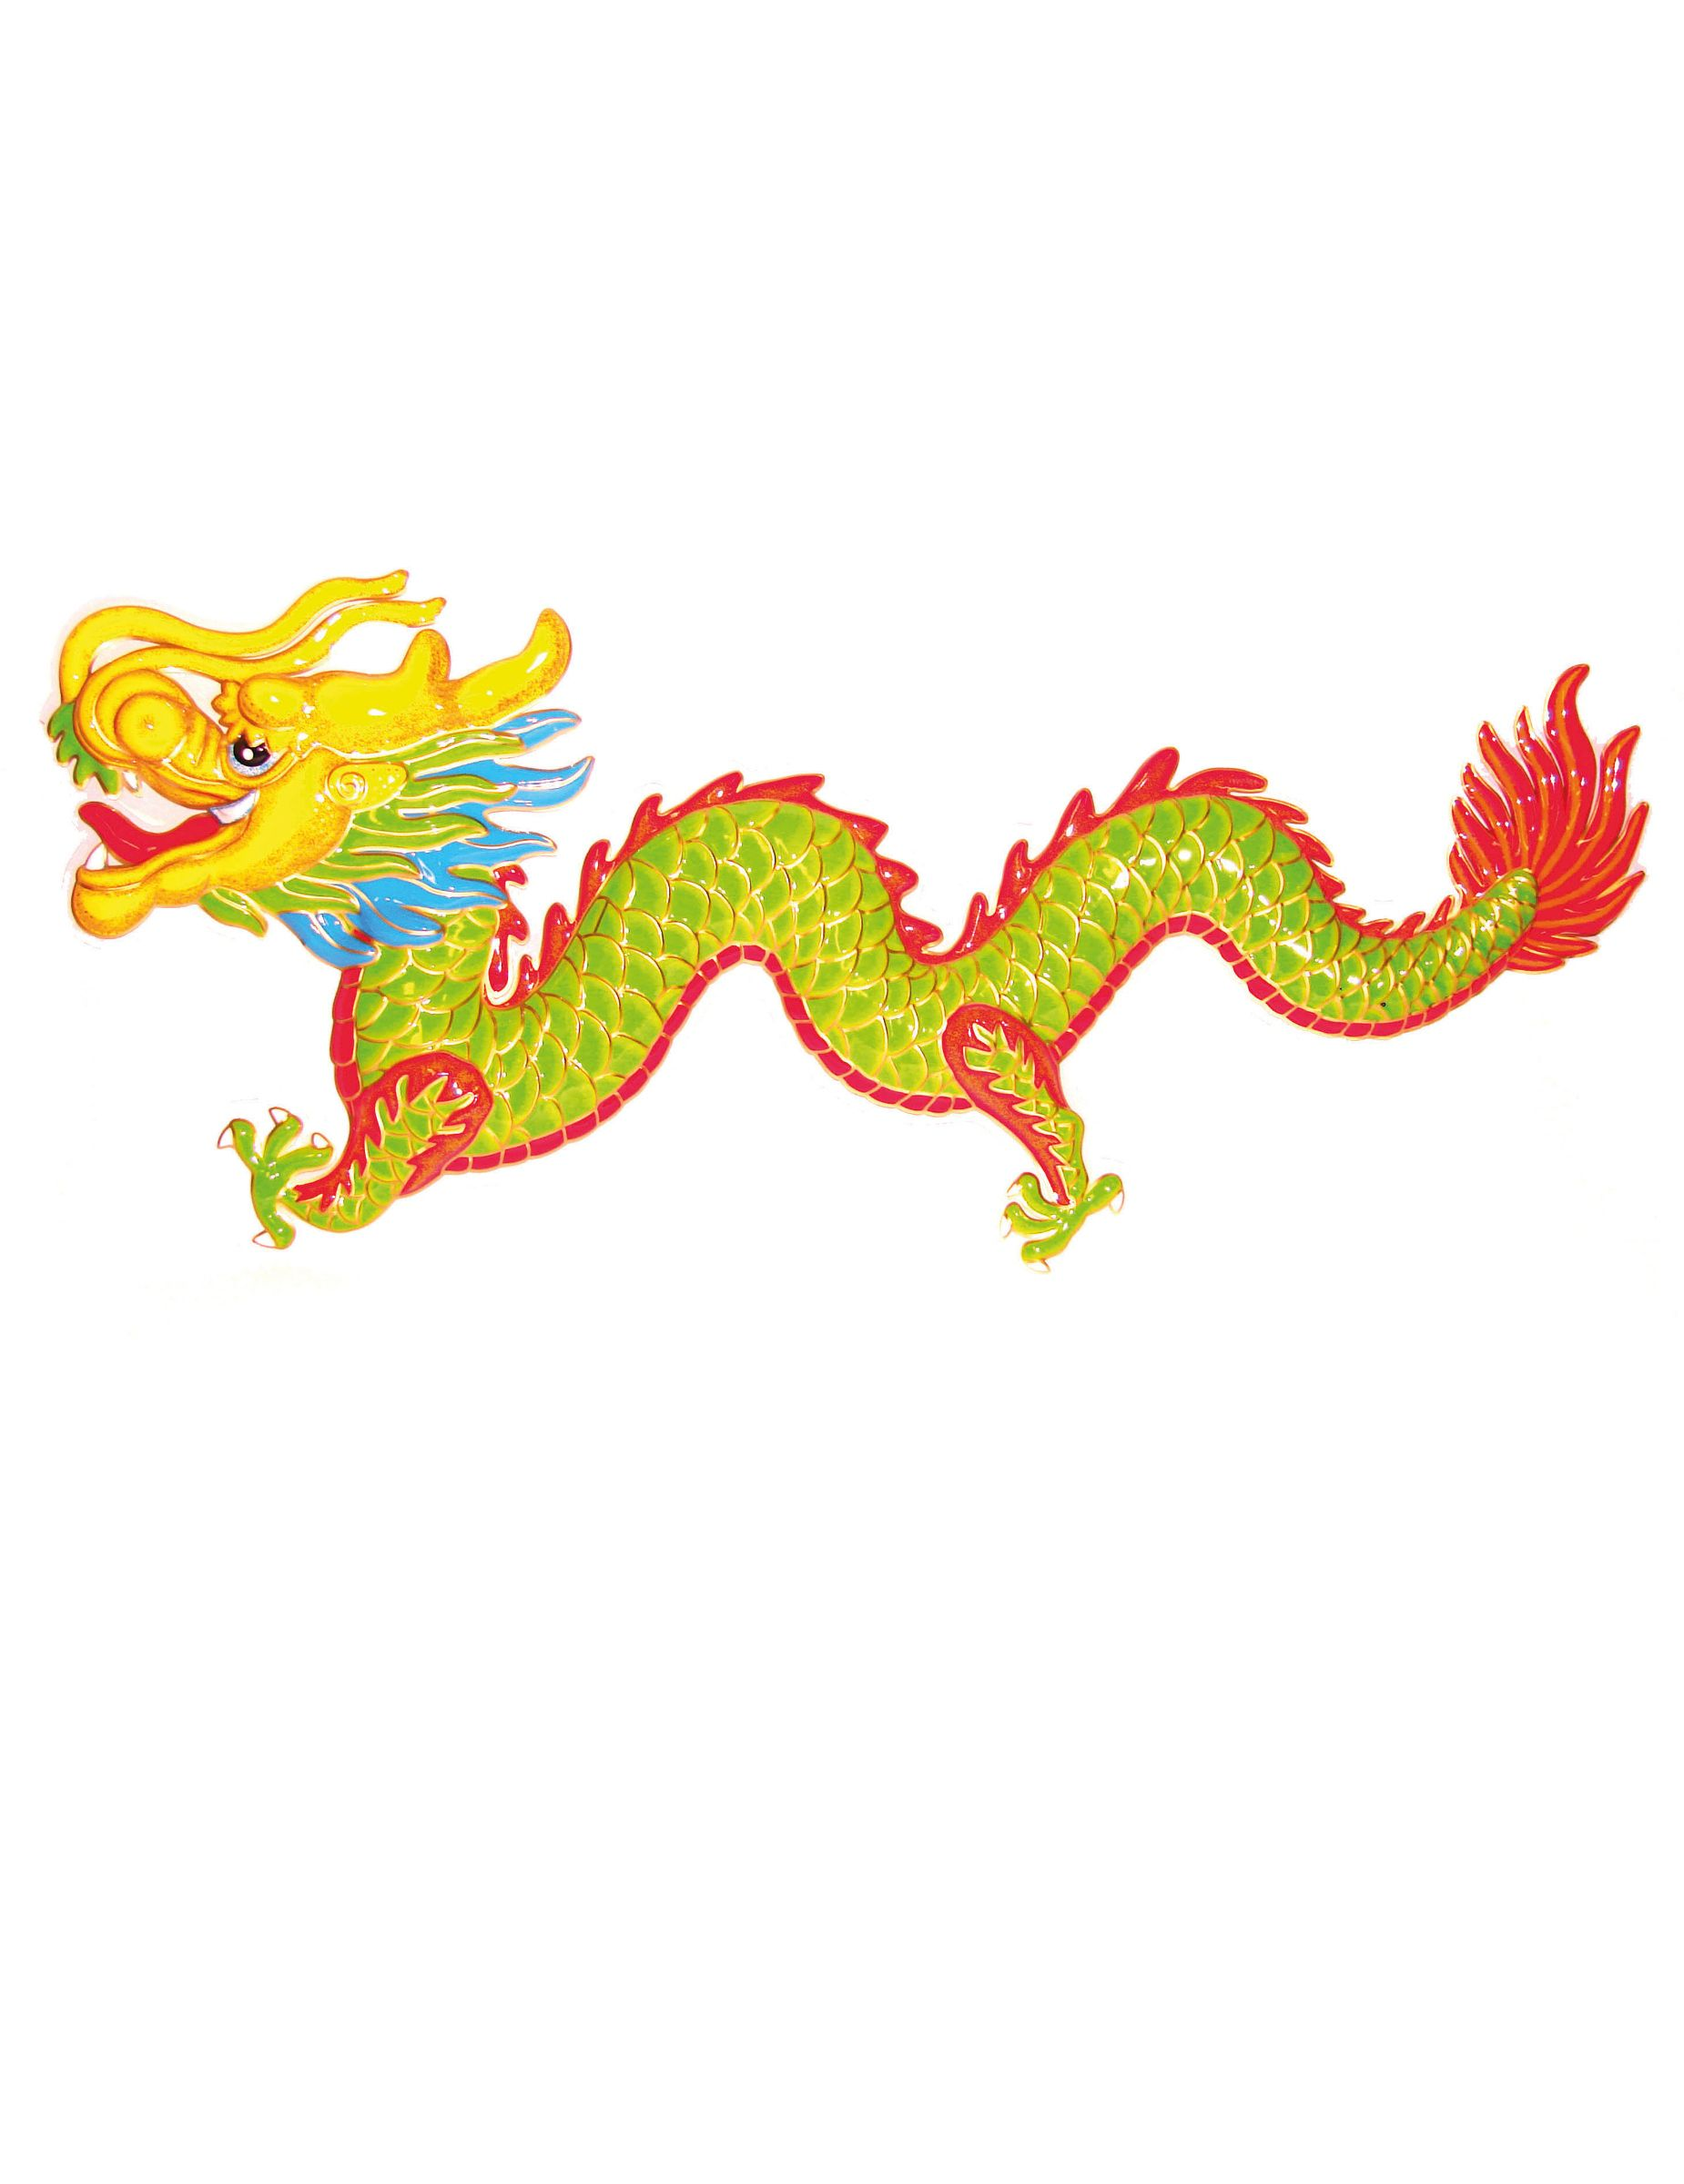 Drachen dekoration asien mottoparty 100cm mottoparty Drachen dekoration